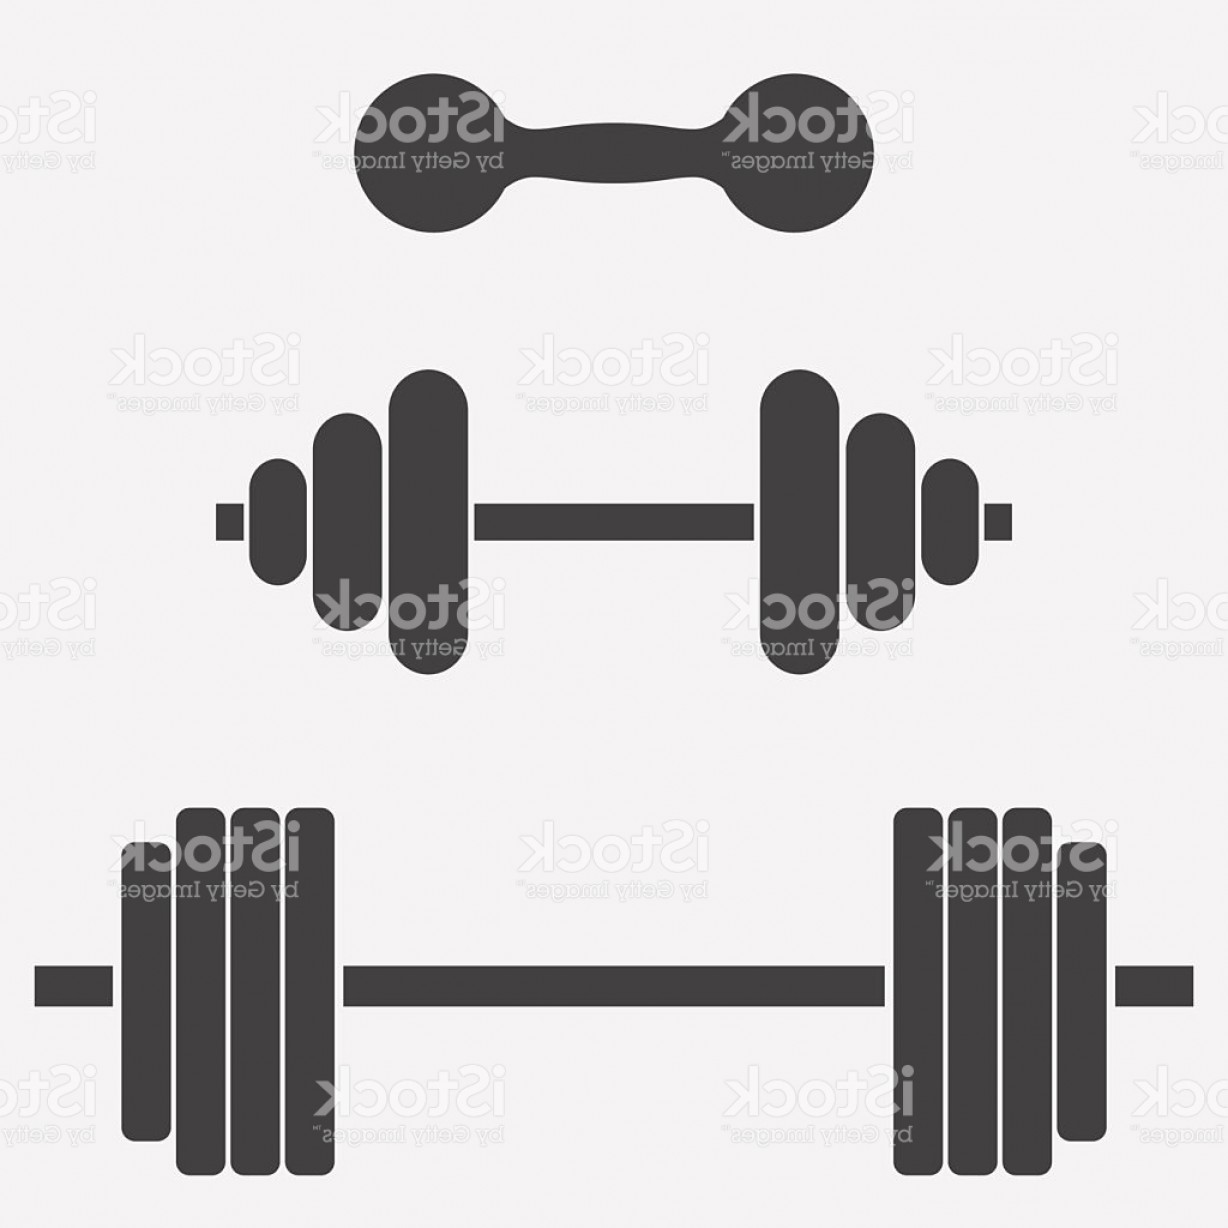 Weightlifter Vector Art: Dumbbells And Barbells Set For Sports Weightlifting Bodybuilding Gm